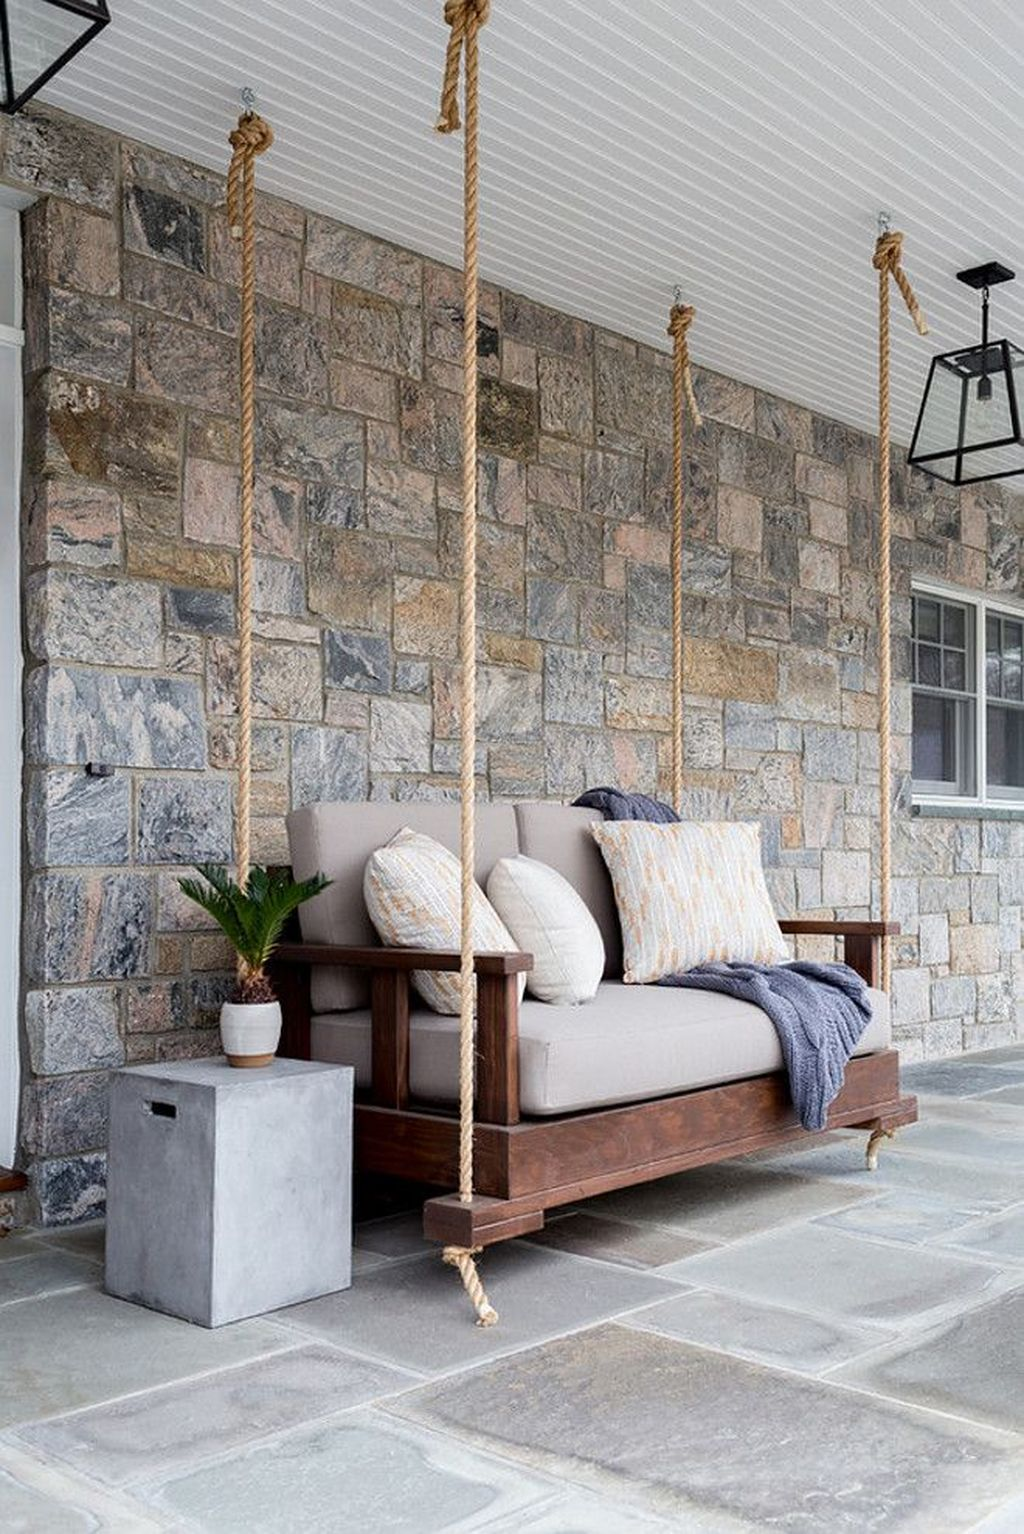 Lovely Rustic Porch Ideas To Beautify Your Home 17